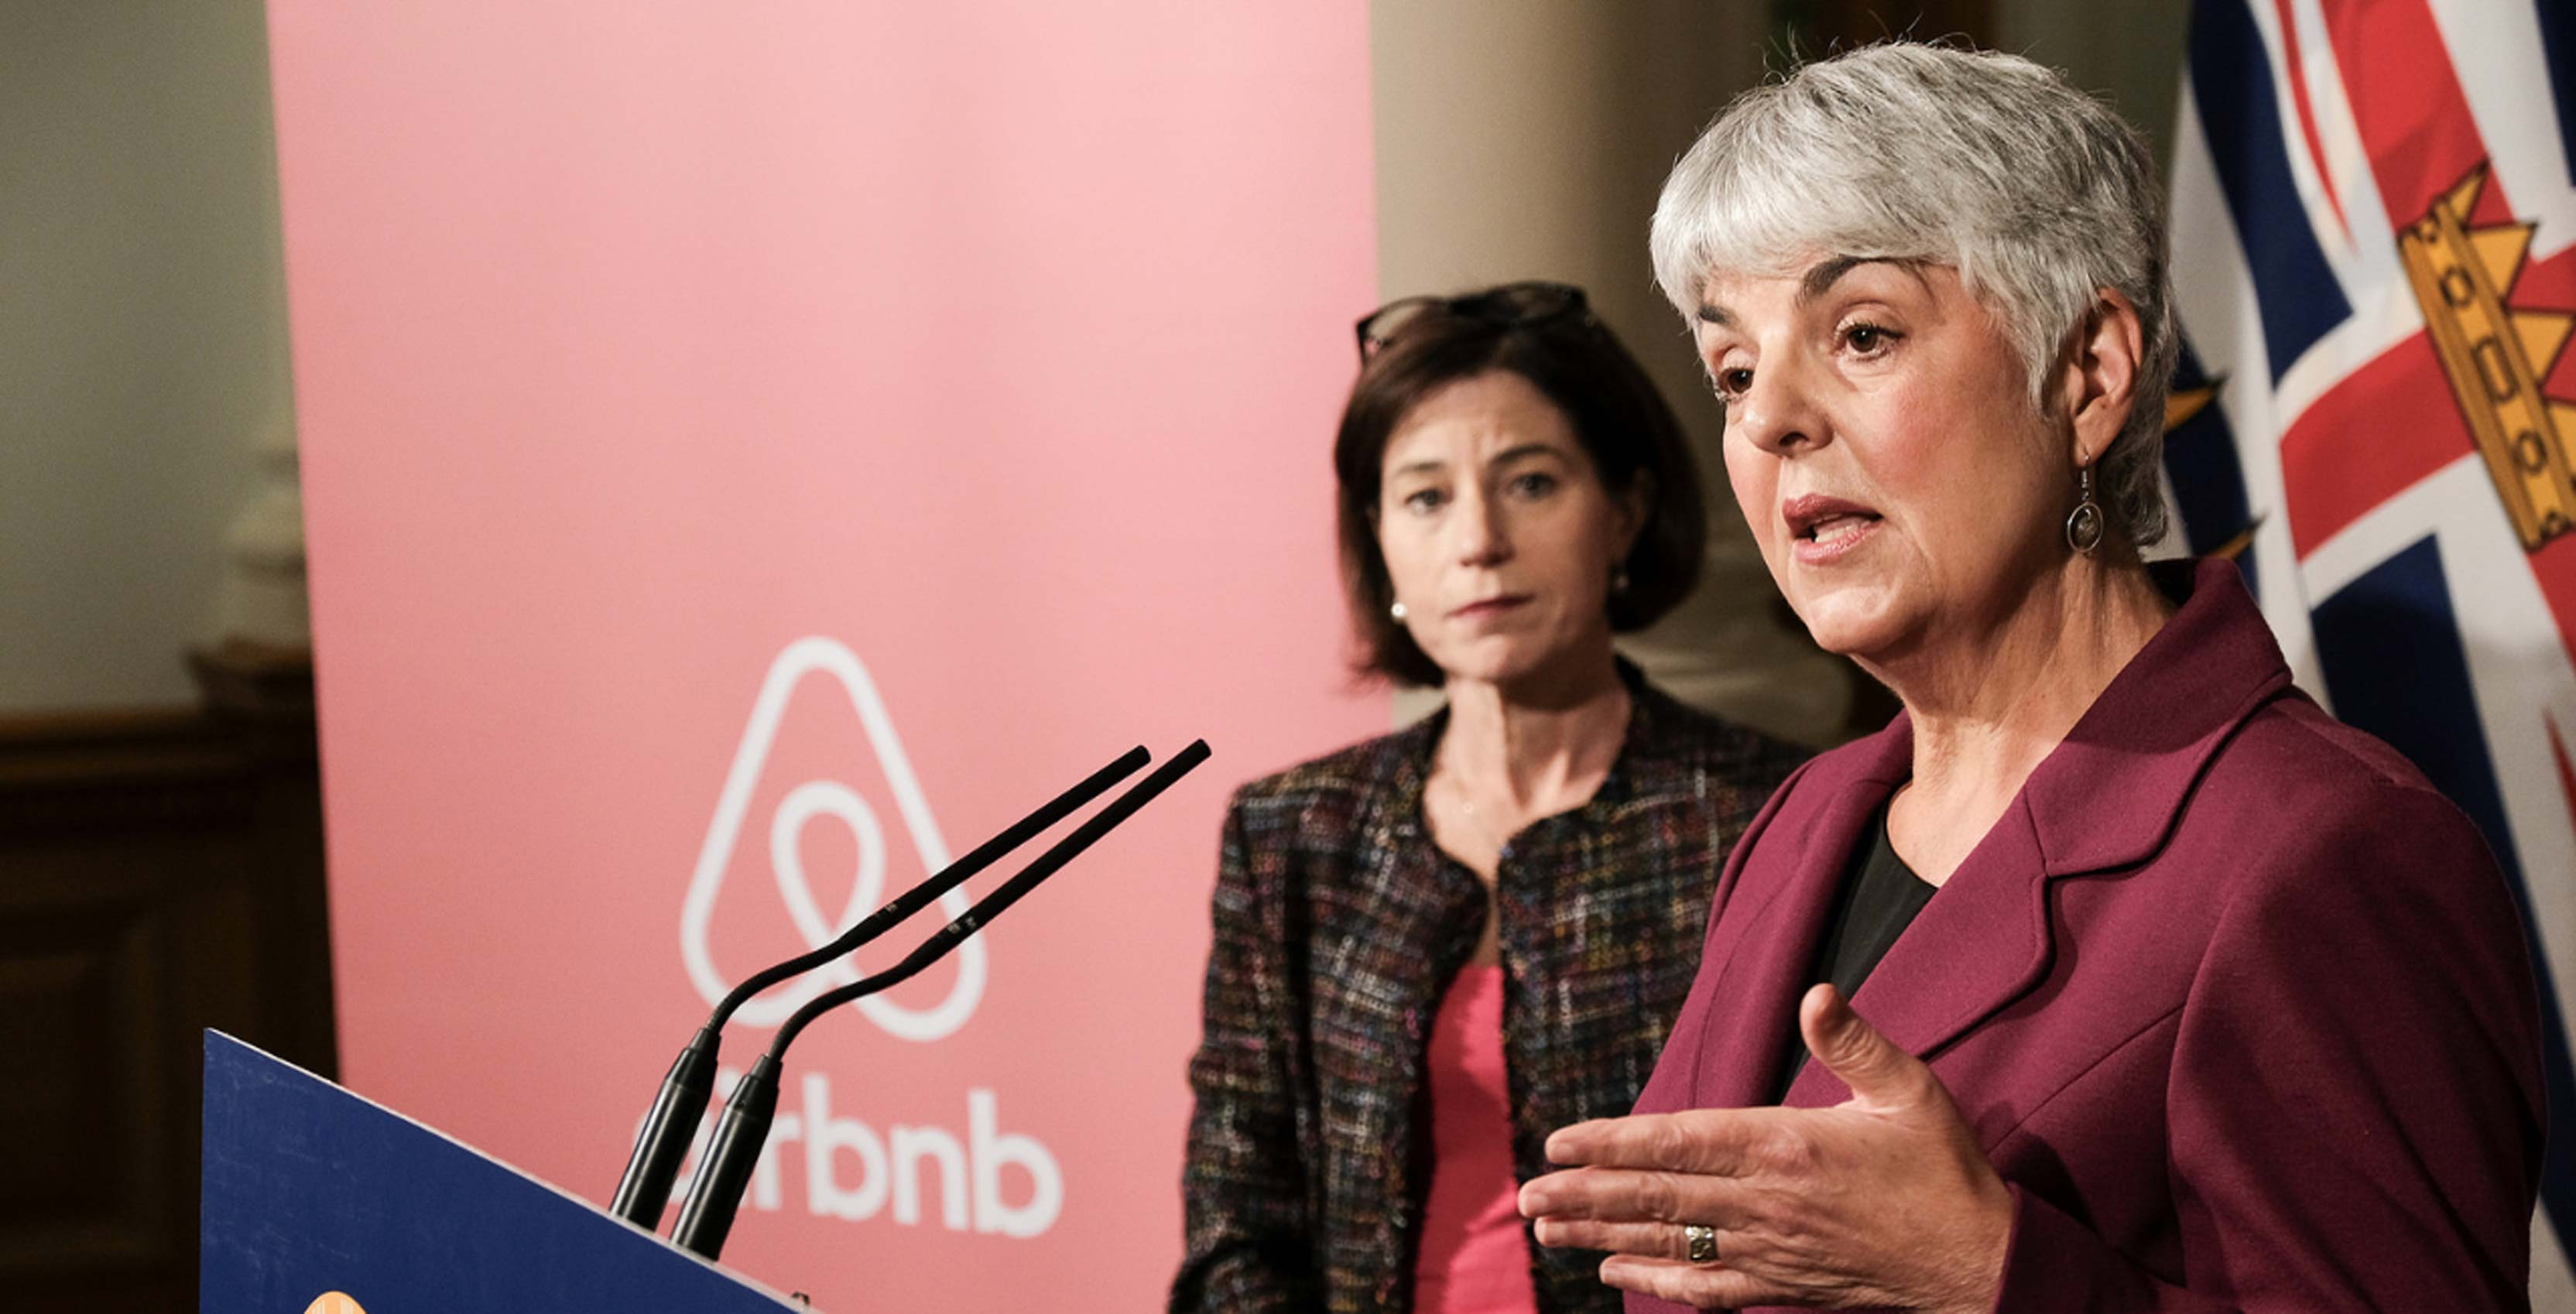 BC to start taxing Airbnb rentals to help pay for affordable housing